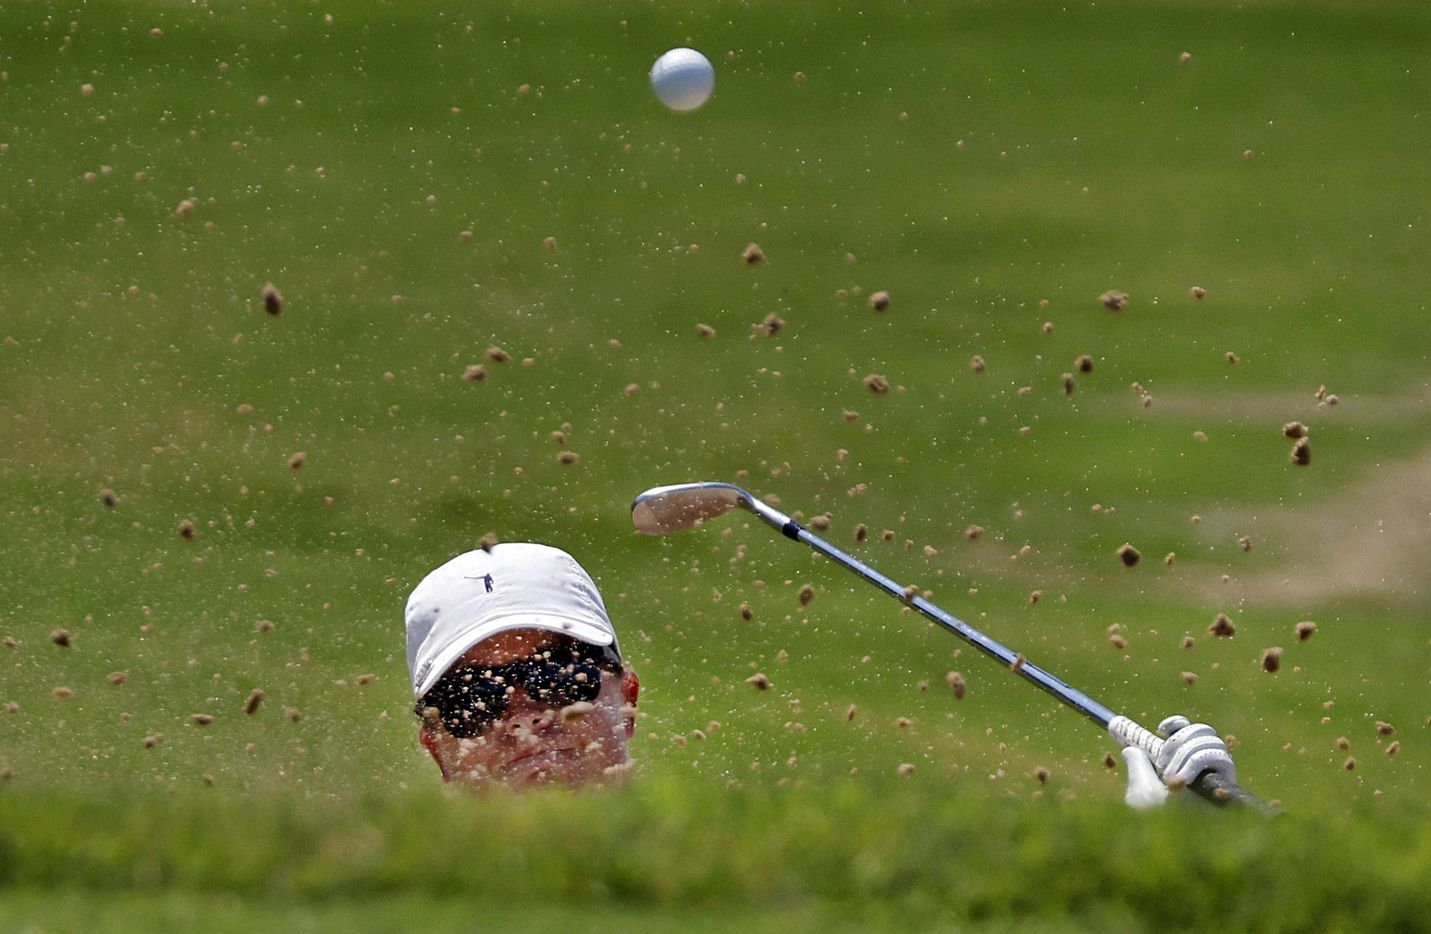 Professional golfer Lauren Coughlin attempts to hit her ball out of the green side bunker on No. 17 during the opening round of the LPGA VOA Classic at the Old American Golf Club in The Colony, Texas, Thursday, July 1, 2021. Her second attempt landed on the green. (Tom Fox/The Dallas Morning News)